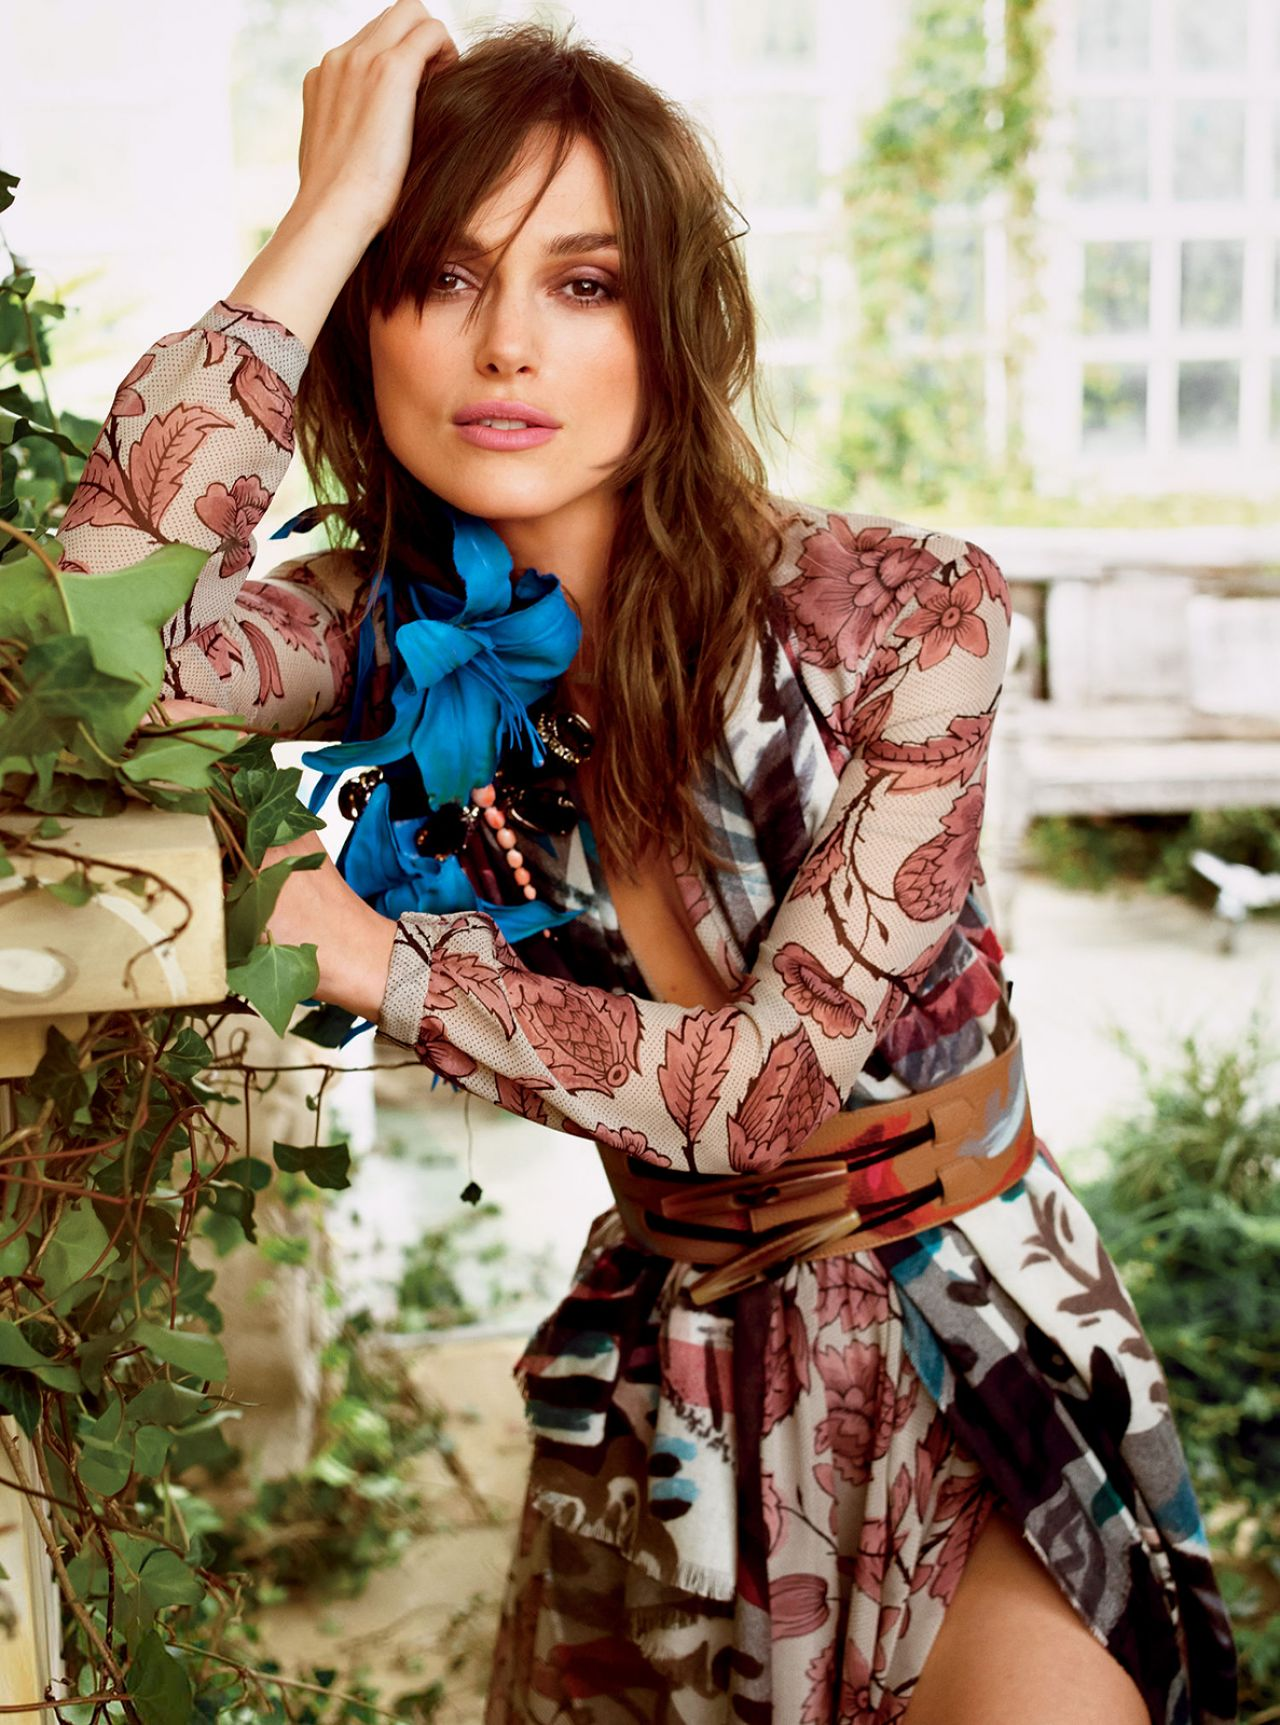 Keira Knightley - Tom Munro Photoshoot for Glamour Magazine July 2014 Issue